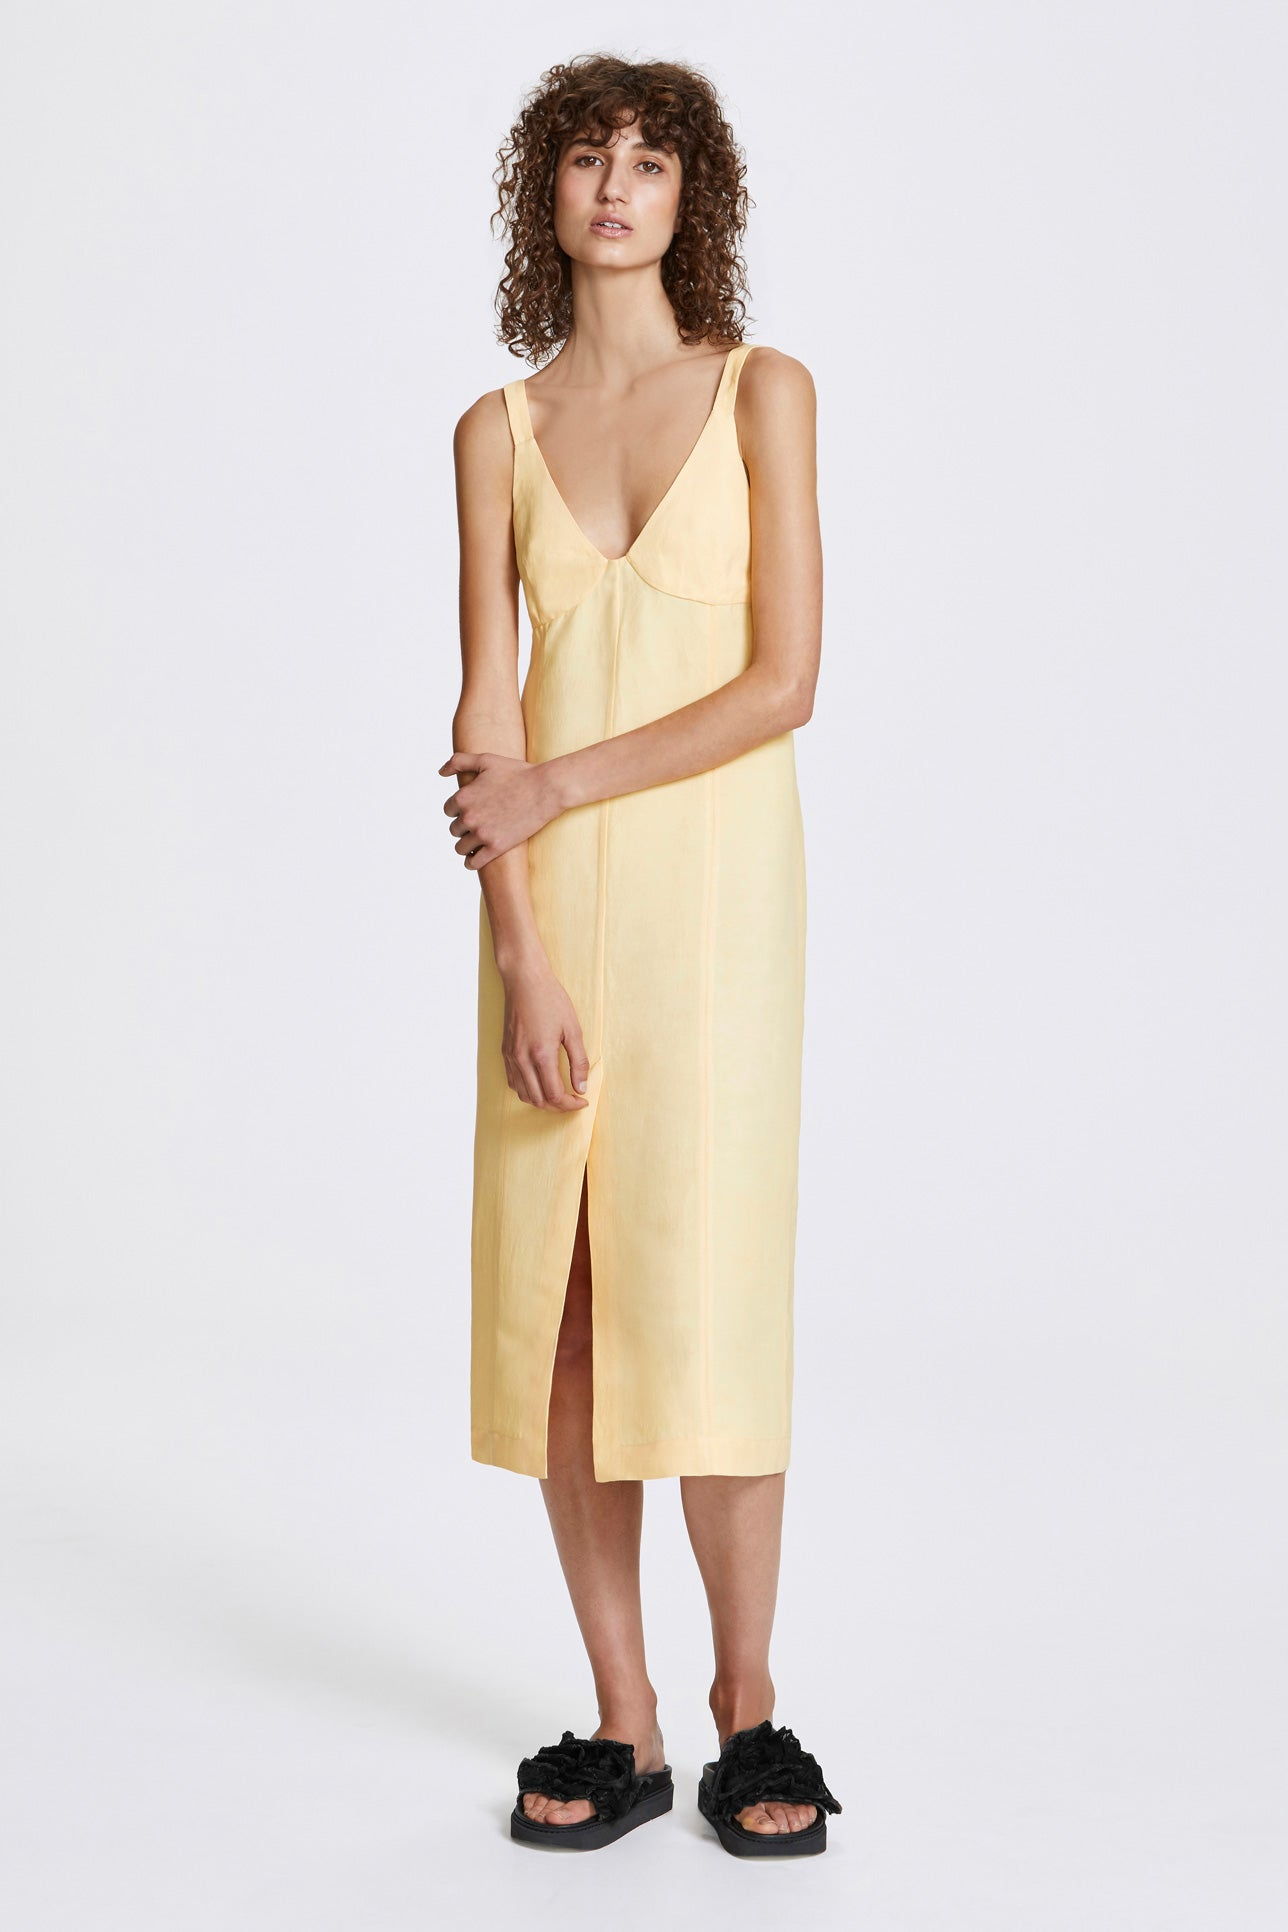 Double vent slip dress - Linen blend - Butter yellow - Resortwear dress - Her Line